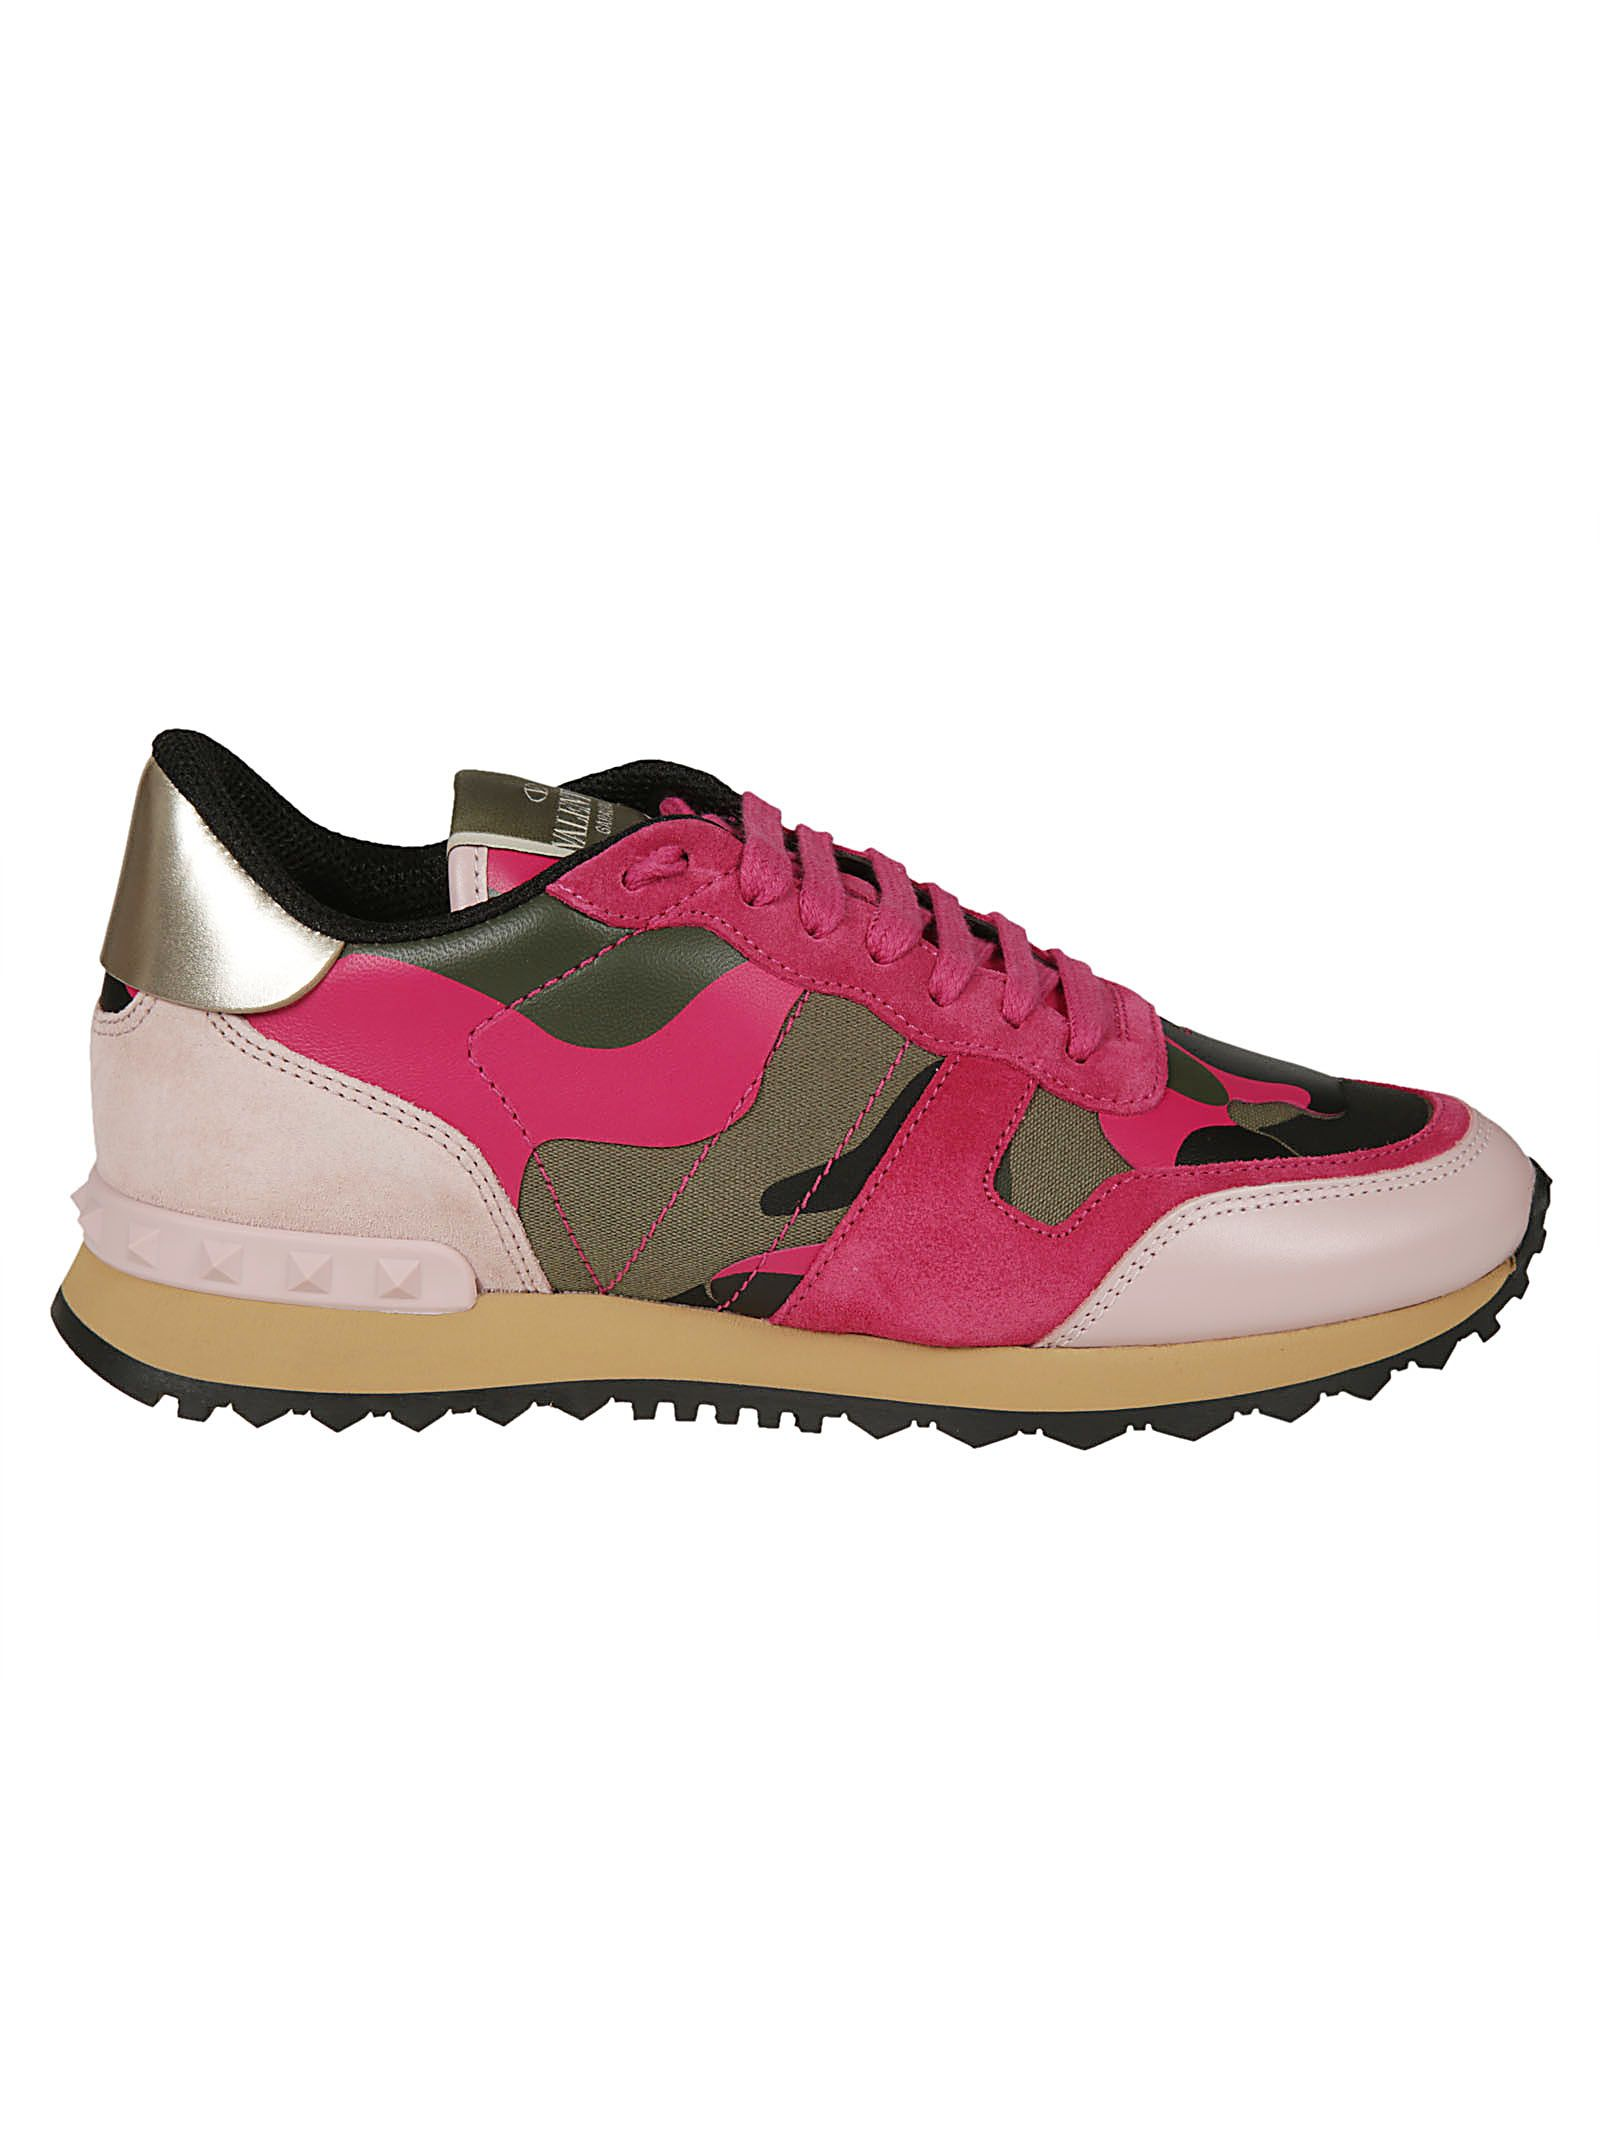 Rockrunner Camouflage Sneakers in Rosa